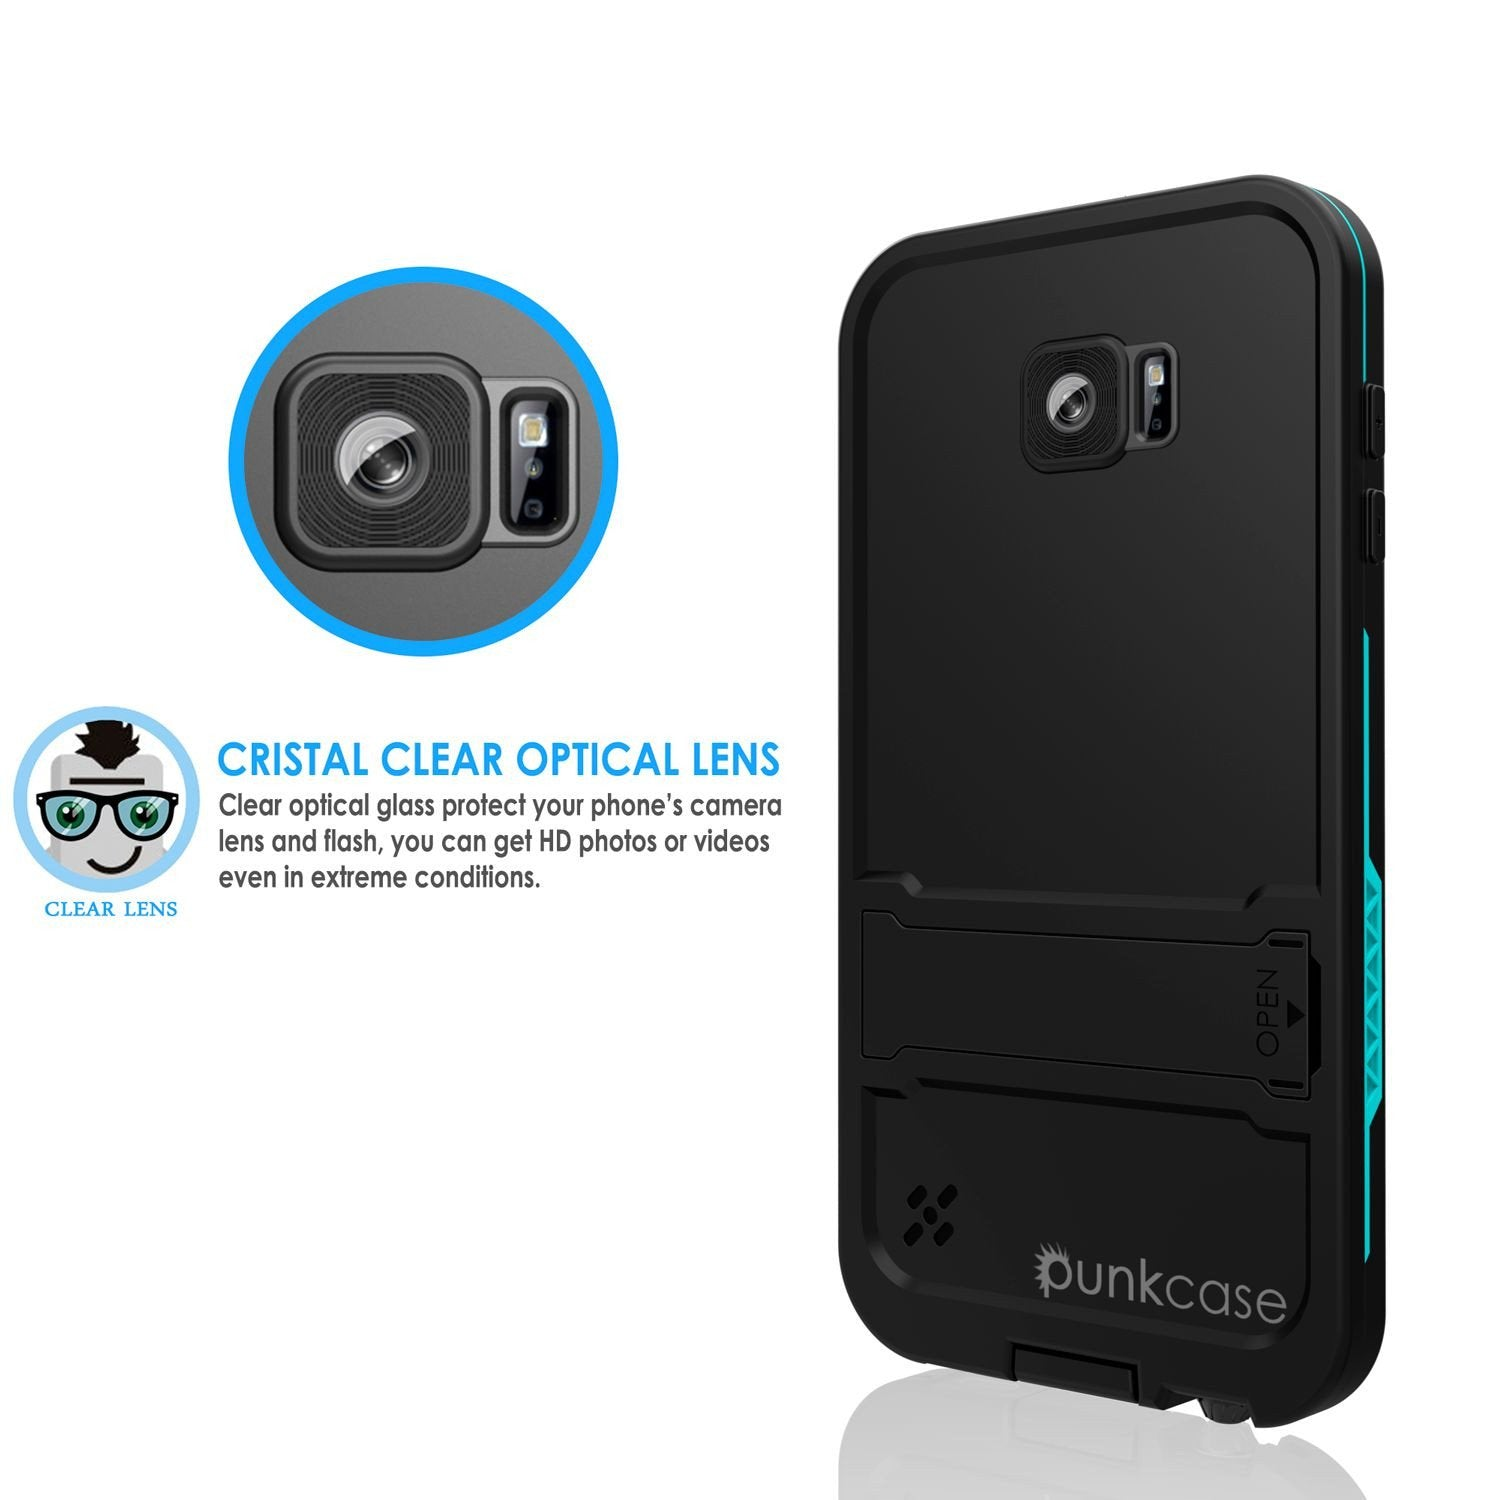 Galaxy S6 Waterproof Case, Punkcase SpikeStar Teal Water/Shock/Dirt/Snow Proof | Lifetime Warranty